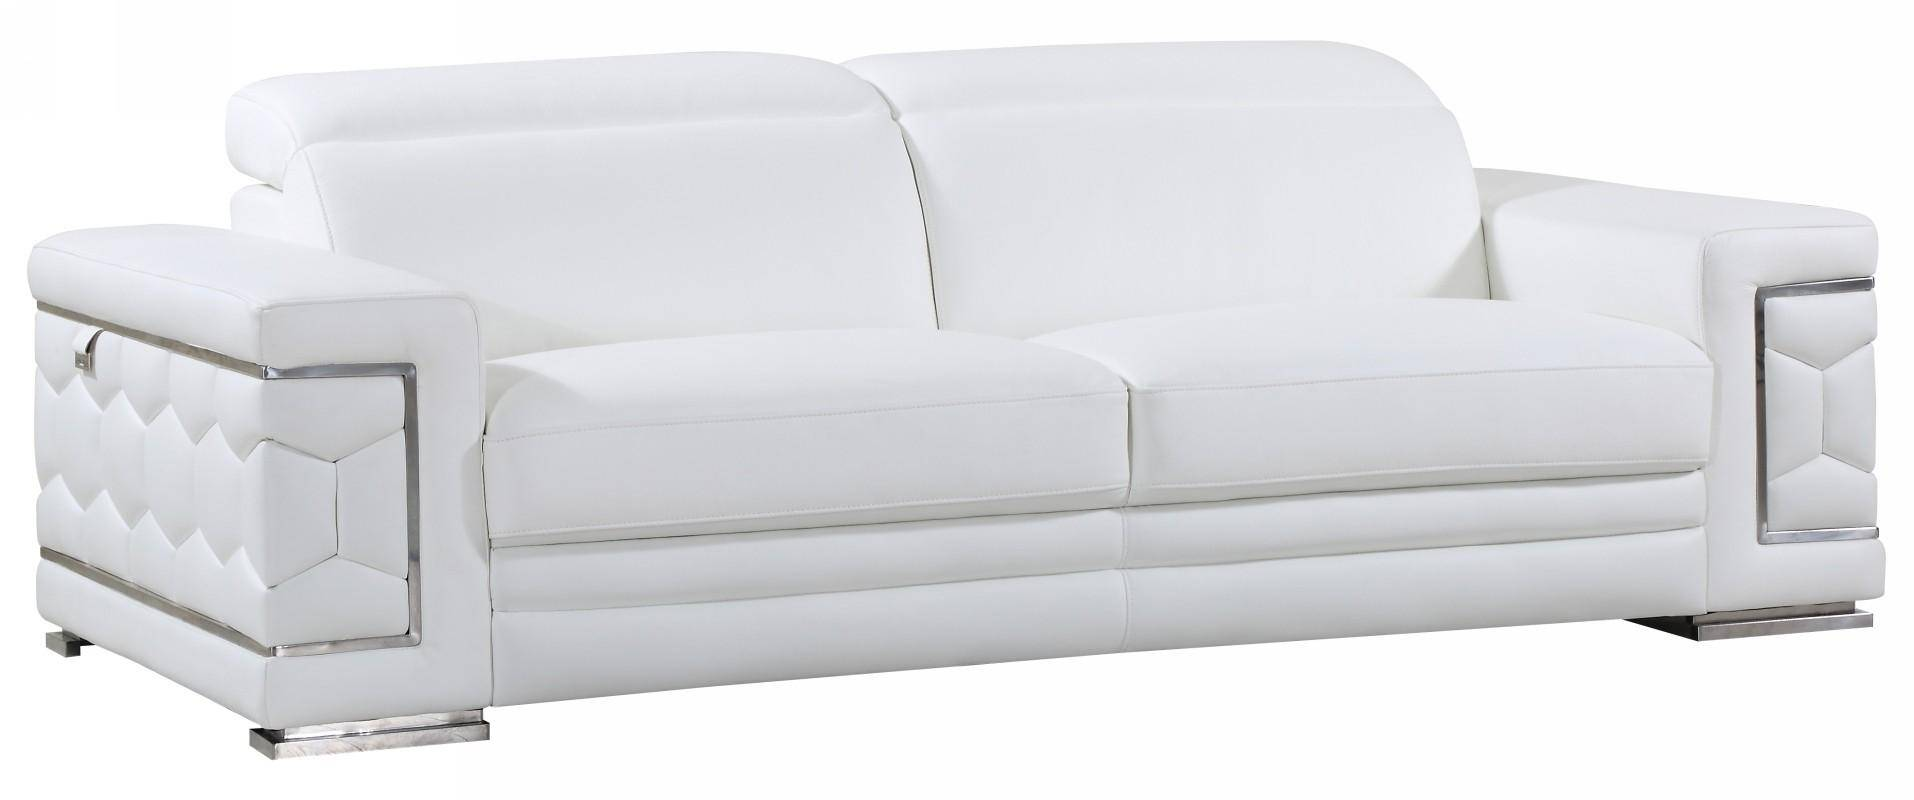 Buy Global United U692 White Sofa Set 3 Pcs In White Genuine Leather Online